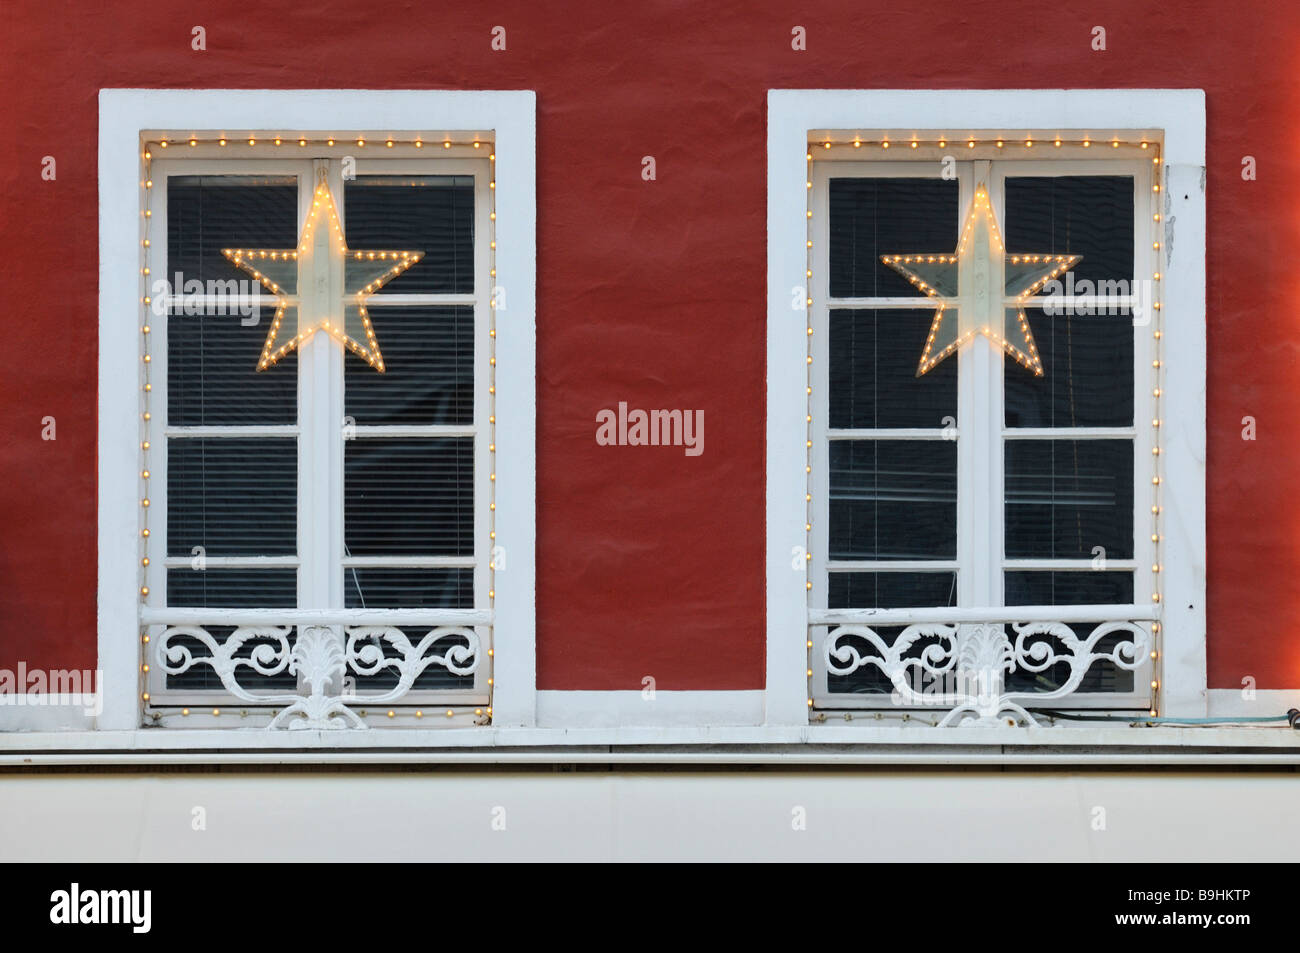 Christmas decoration, stars and chain of lights on crown glass windows - Stock Image